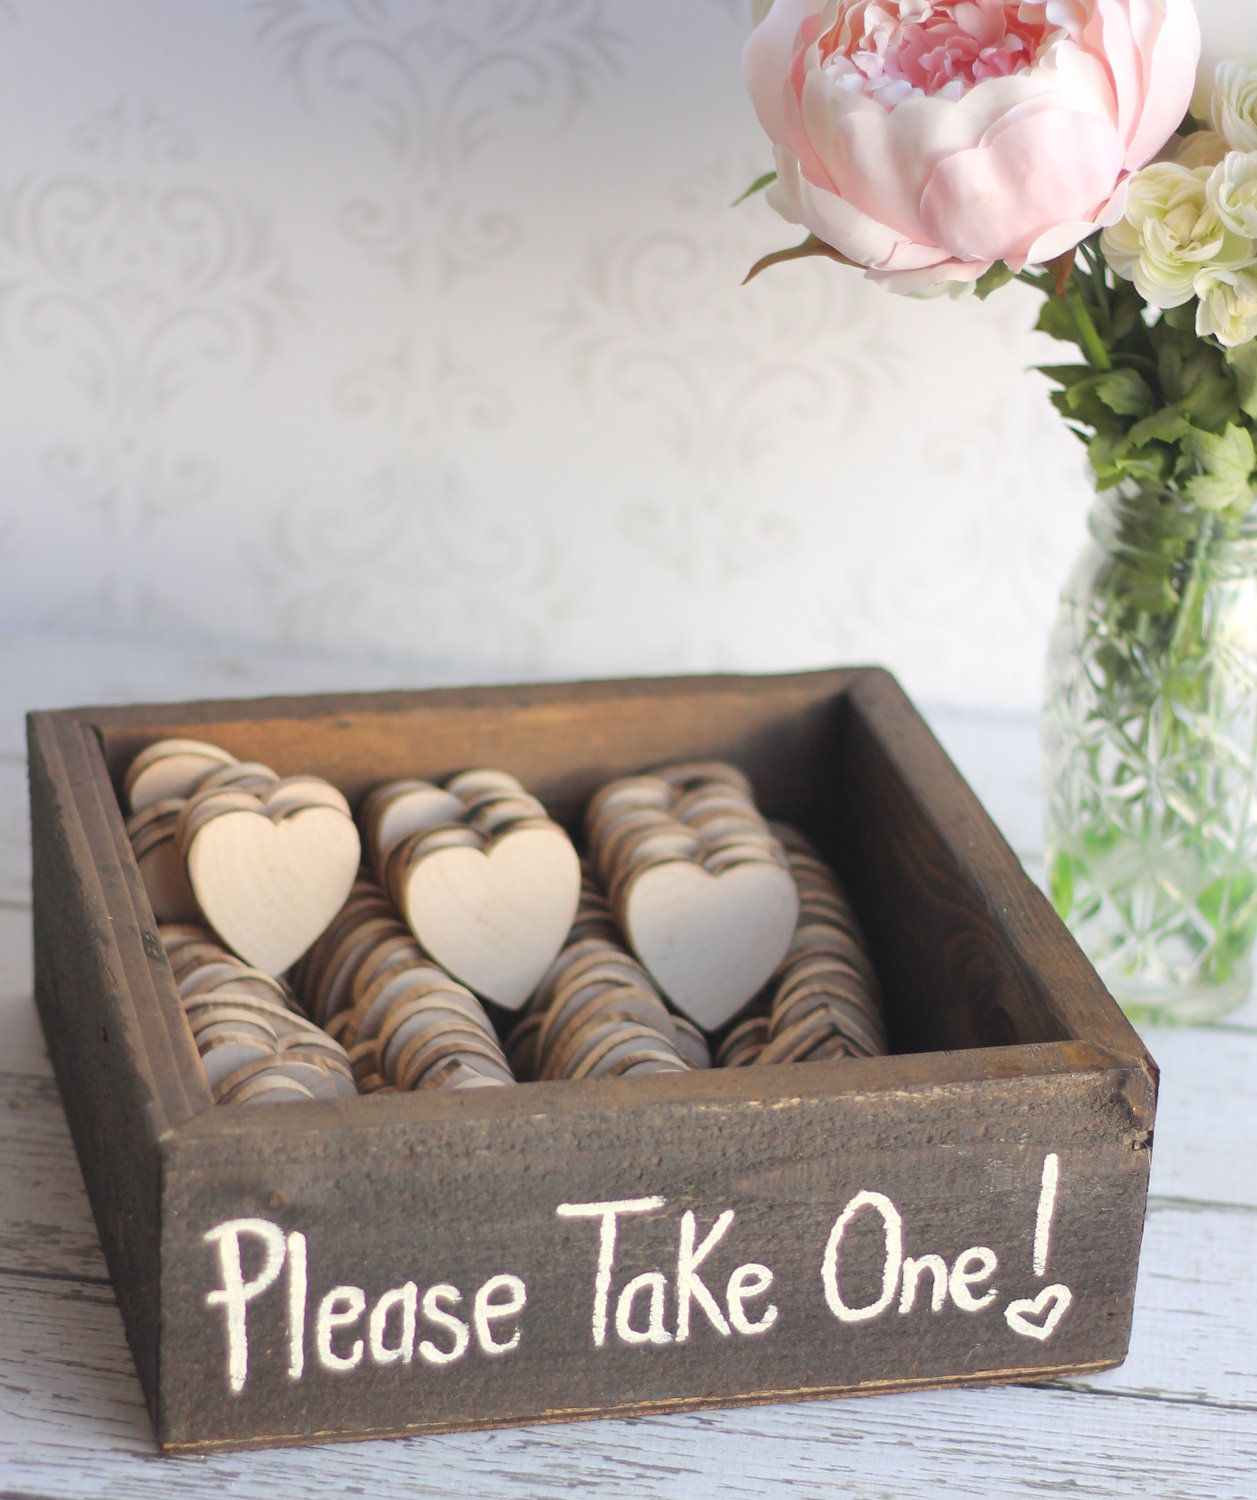 Gift For Wedding Guests: Wedding Favor Idea... Chalkboard Hearts With A Cute Saying